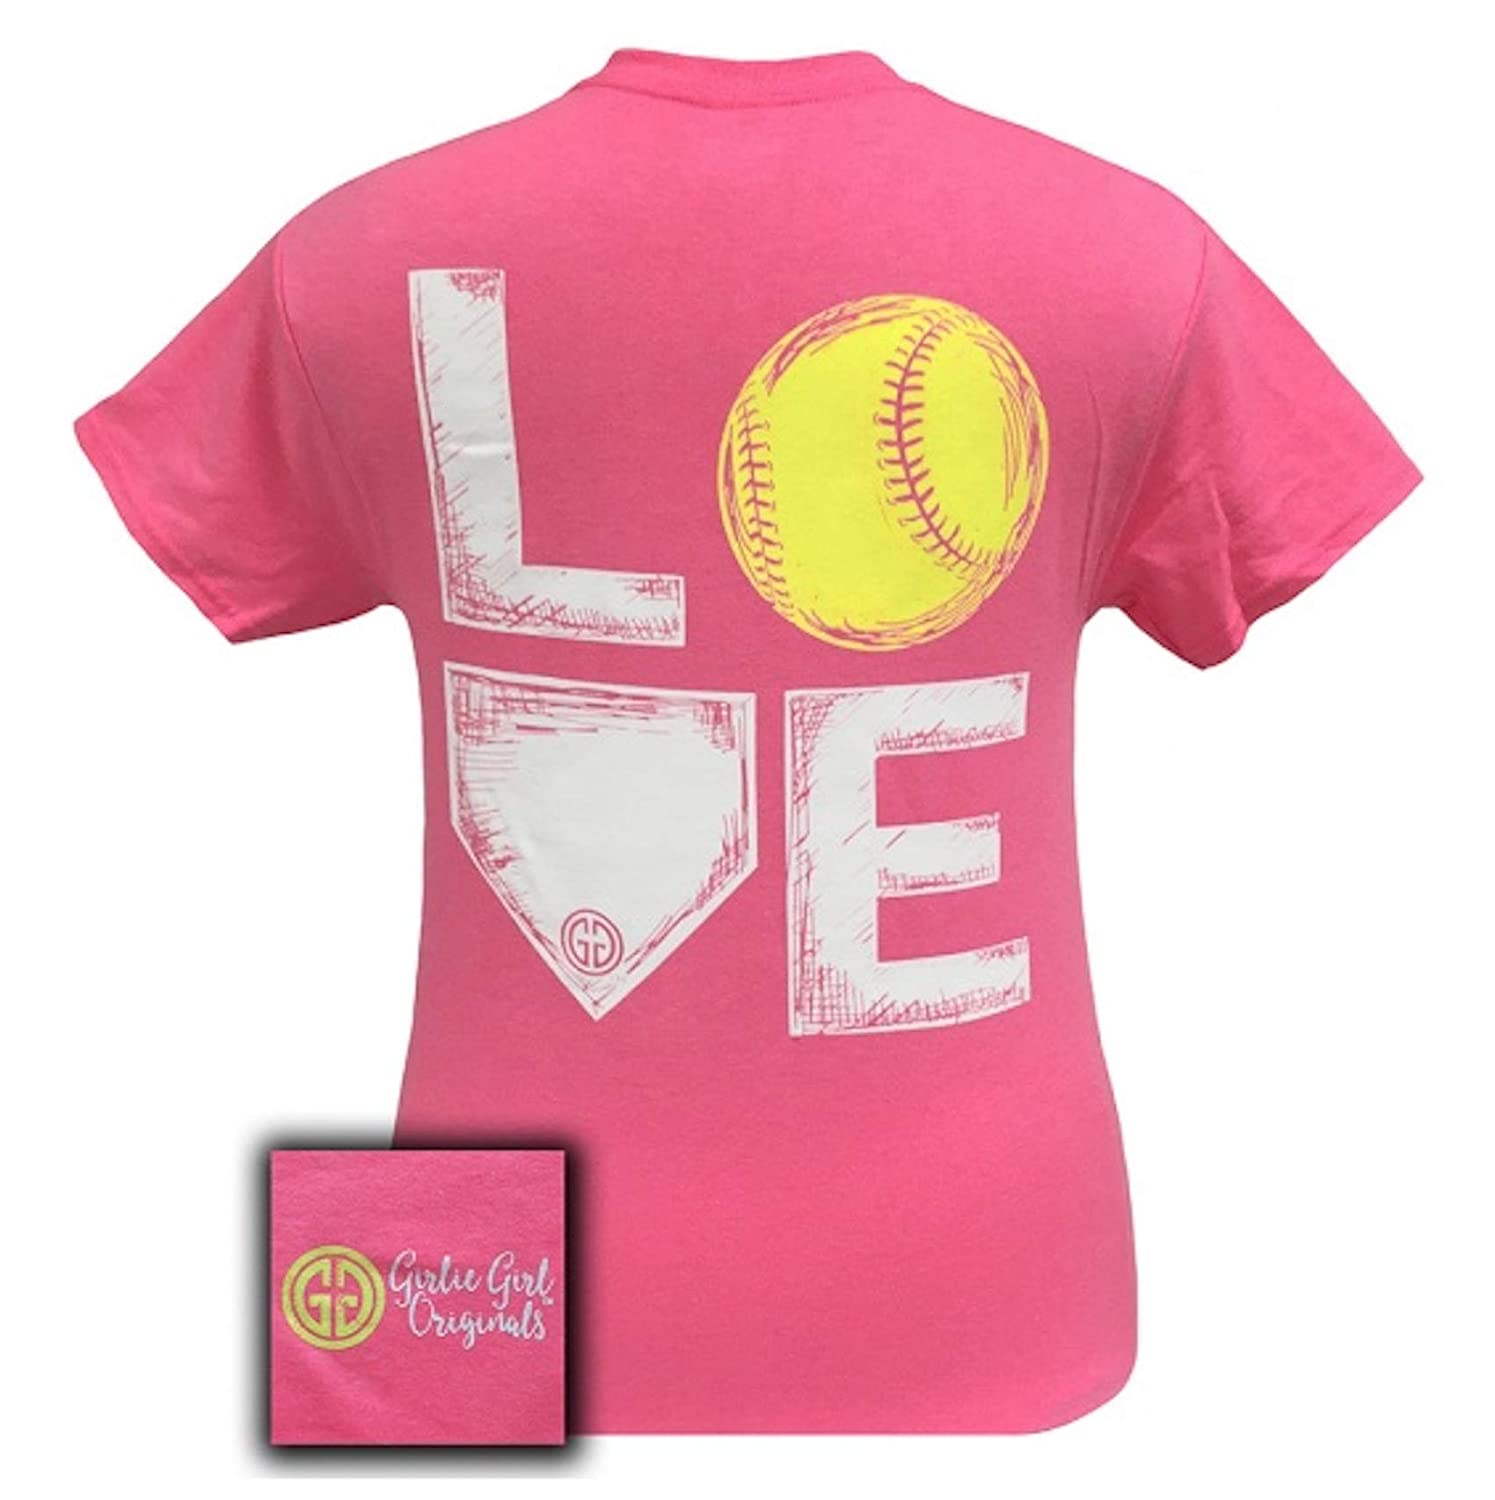 ec59ff45 Amazon.com: Girlie Girl Originals Love Softball T-Shirt Safety Pink, Small:  Clothing